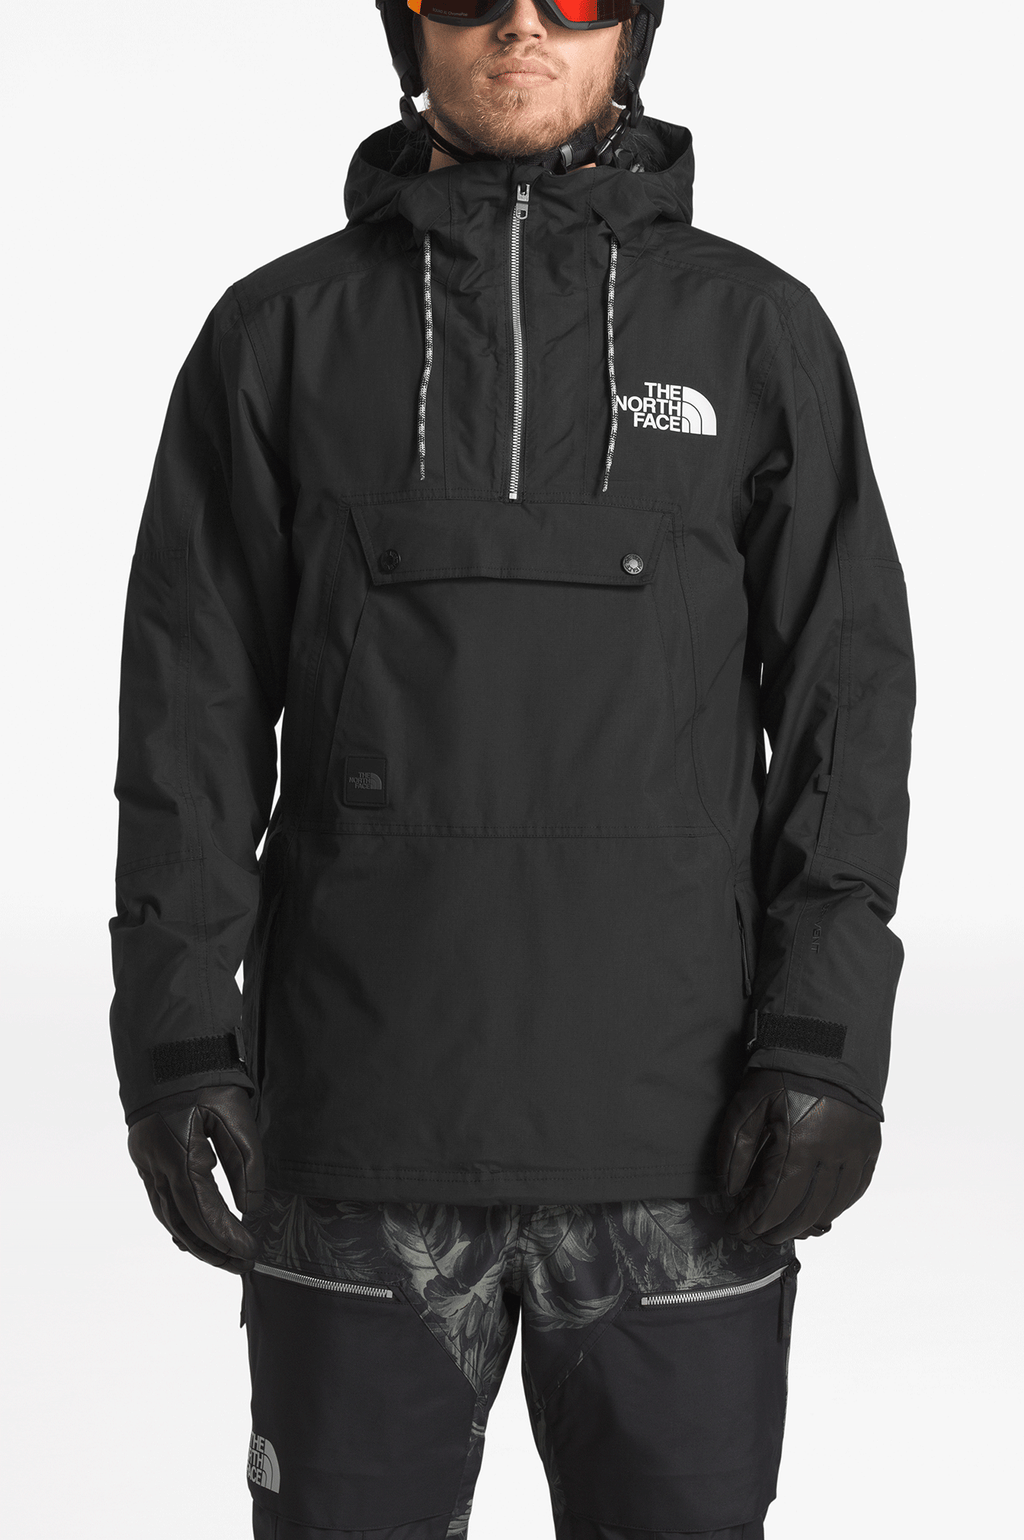 THE NORTH FACE MENS SILVANI JCKT